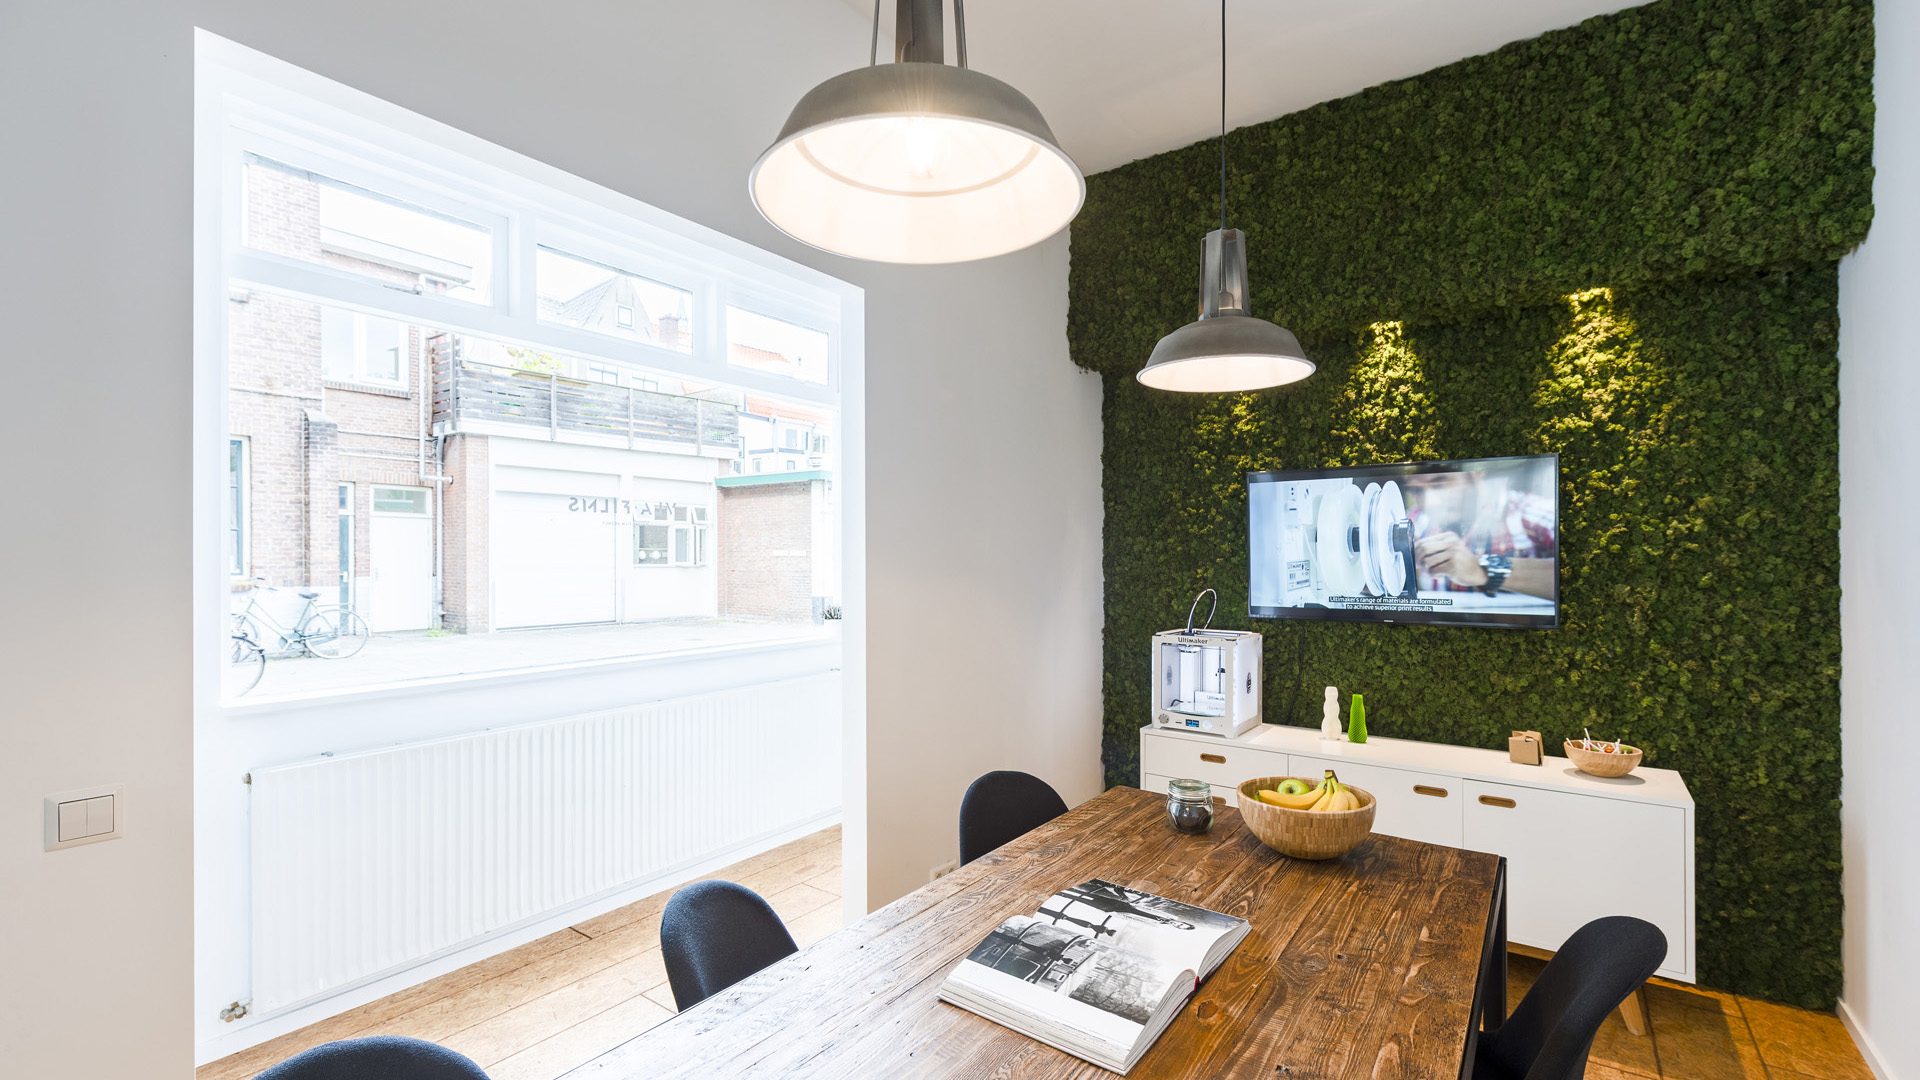 architectuur-delft-koornmarkt-renovatie-transformatie-interieur ...